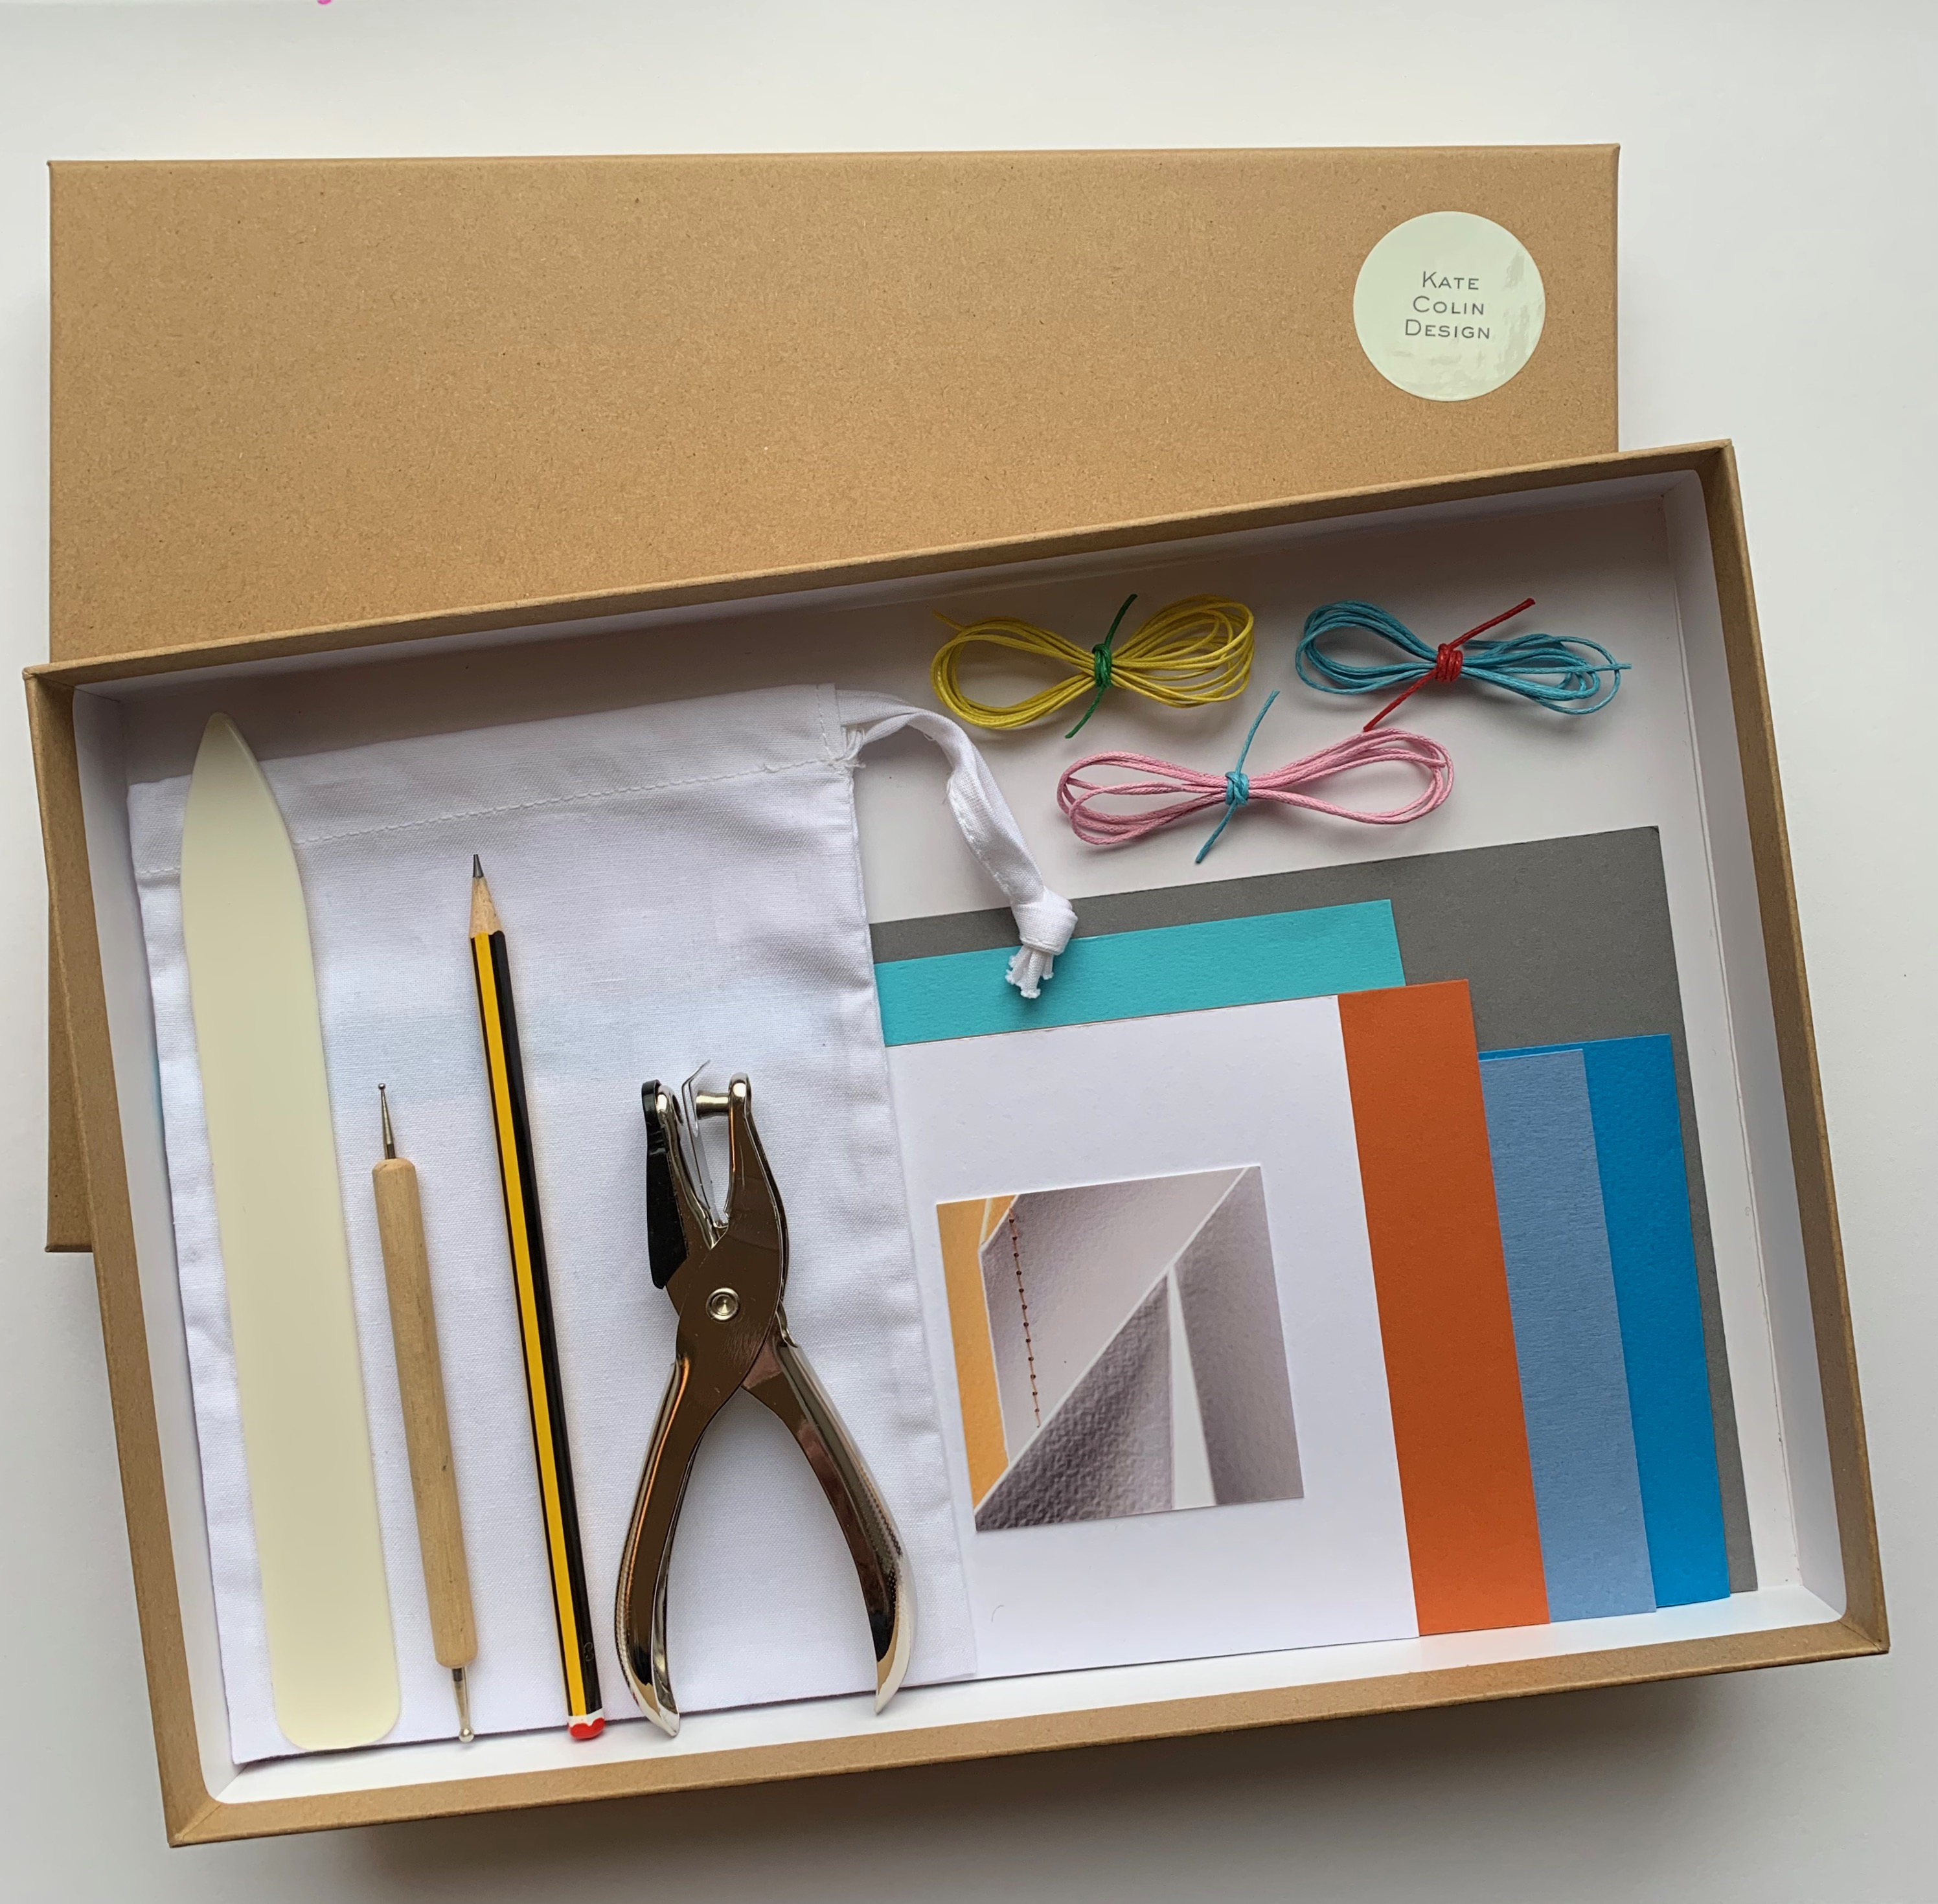 Online Event - An Introduction to Paper Folding